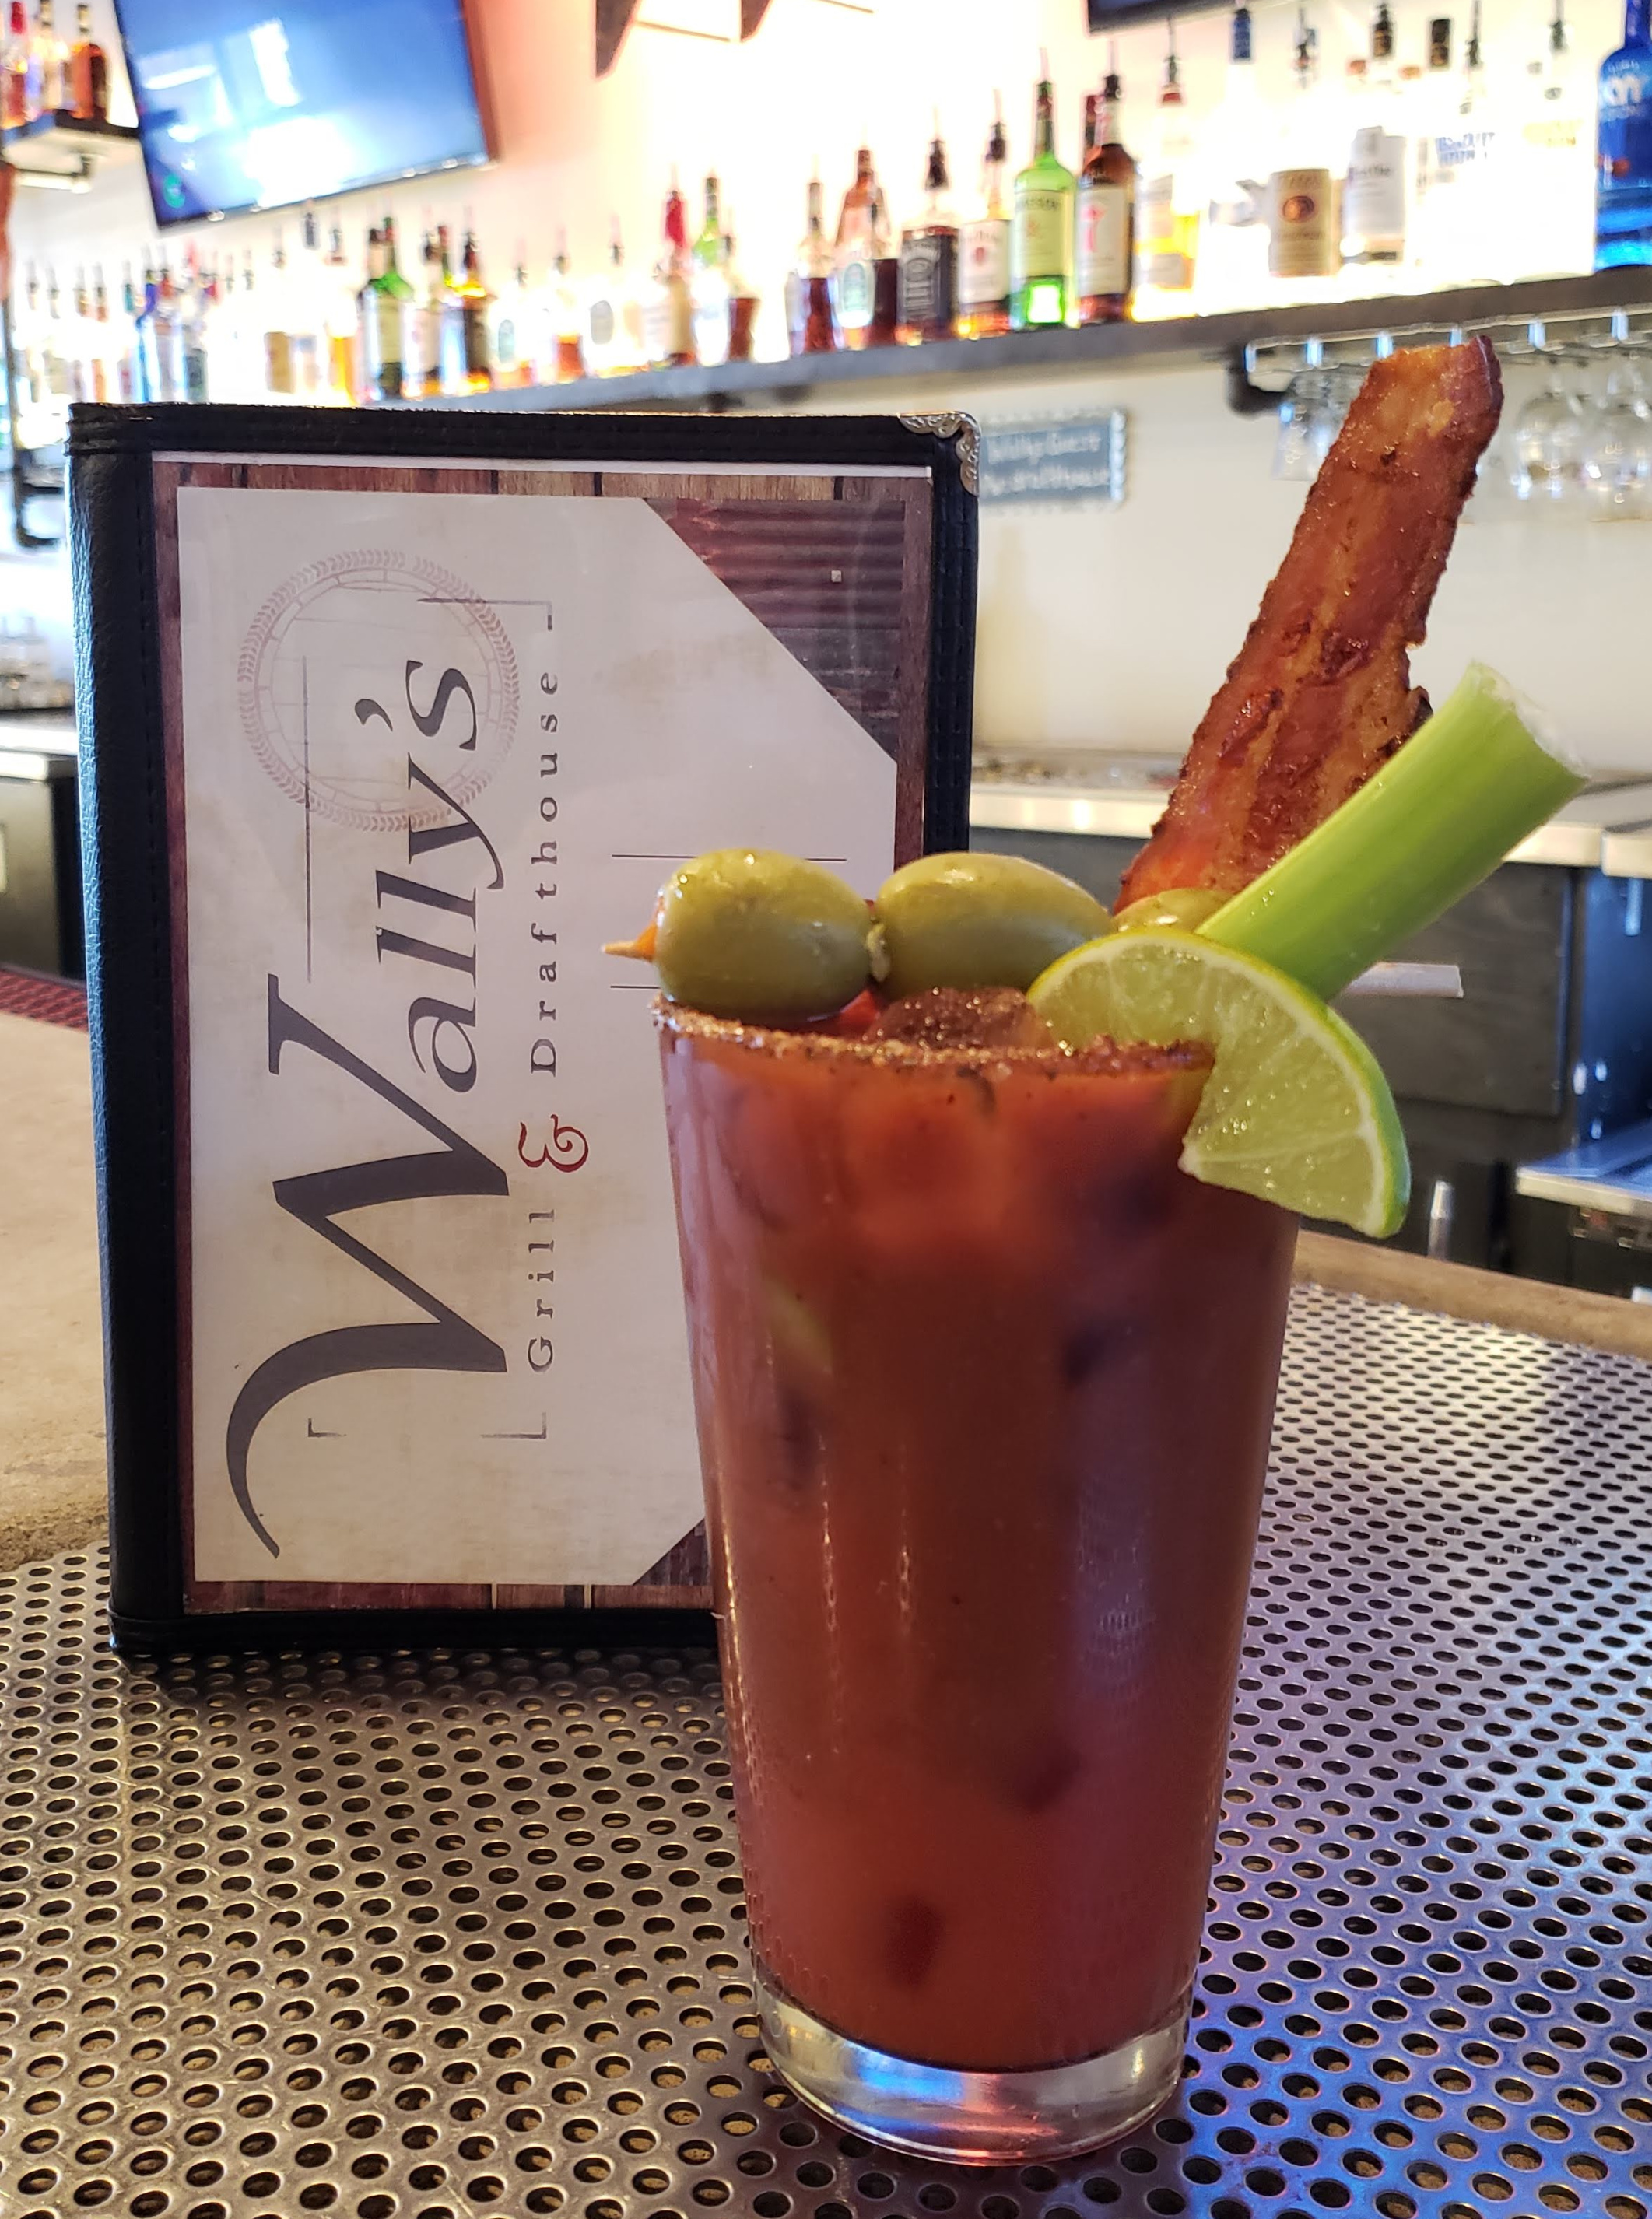 Wally's Special Bloody Mary with House-made Pepper Vodka